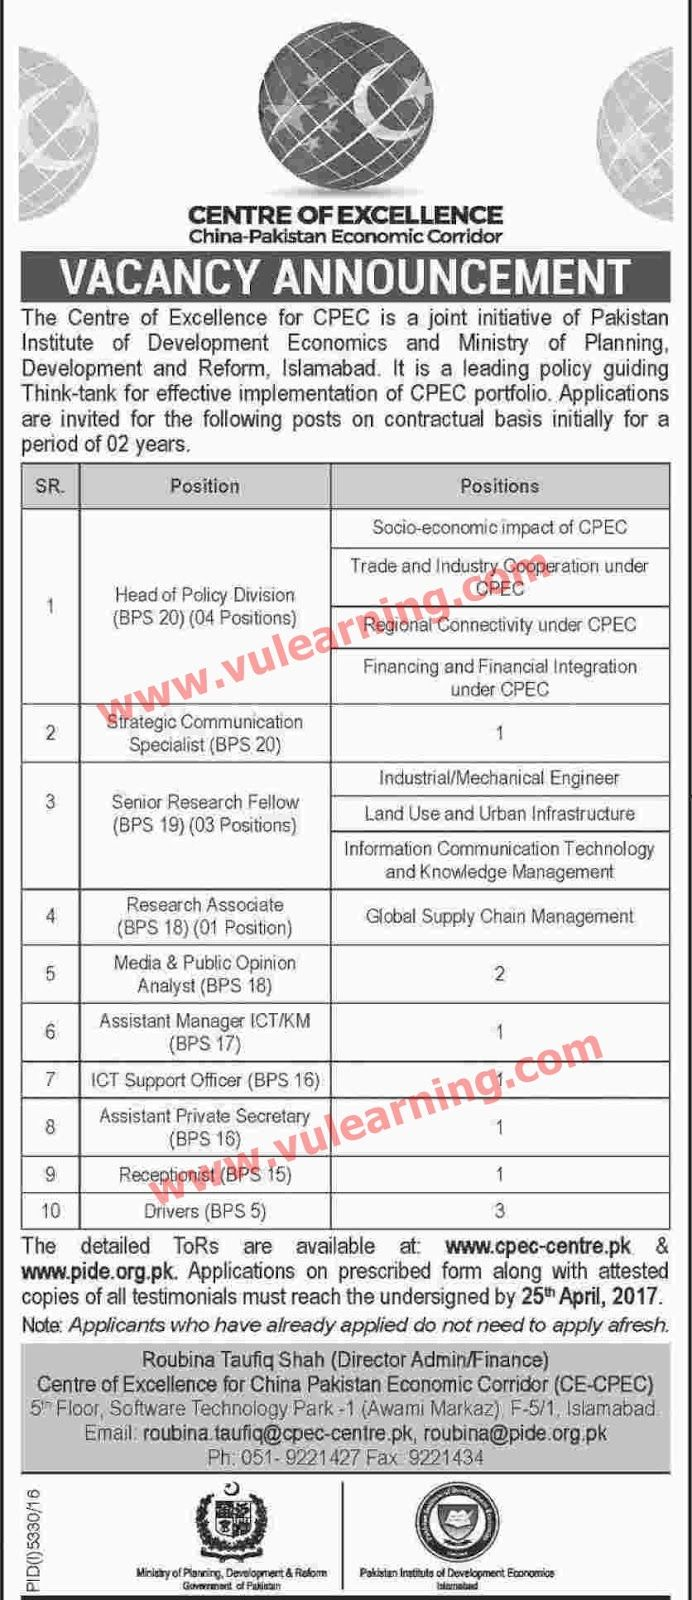 #  Title  Details  1  Jobs Location  Pakistan  2  Government / Private  Government  3  FPSC / PPSC / NTS / Others  Others  4  Published Date  09 Apr 2017 Sunday  5  Last Date to Apply  25 Apr 2017 Tuesday  6  Newspaper Name  Dawn  CPEC Jobs 2017 China Pak Economic Corridor Centre of Excellence Latest  Applications are invited for vacant posts in contractual basis initially for a period of two years againstCPEC Jobs 2017China Pak Economic Corridor Centre of Excellence Islamabad Latest. Center…